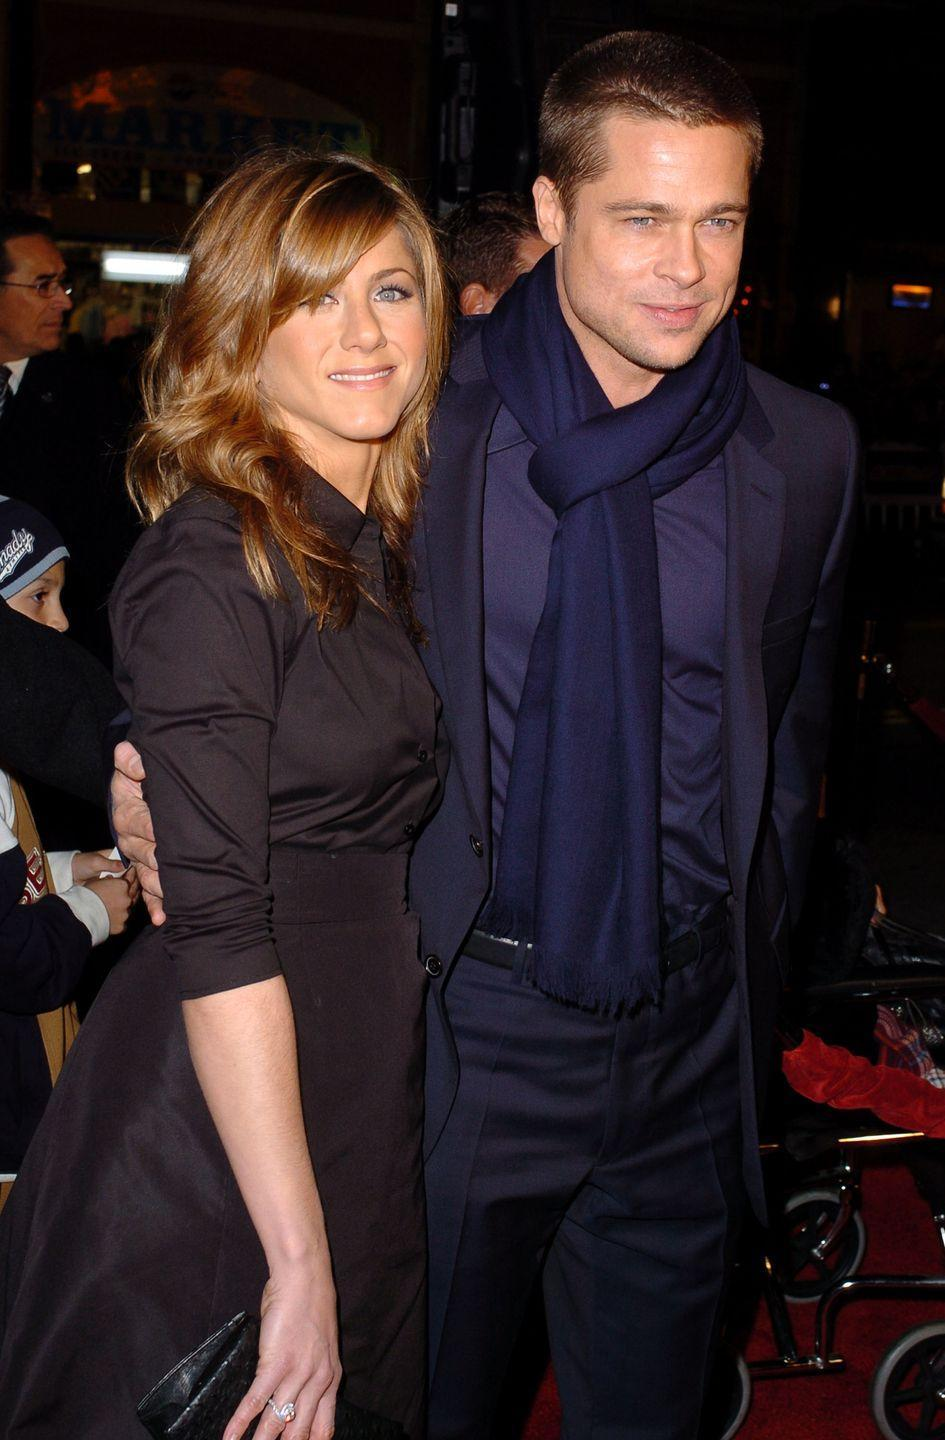 <p>Pitt accompanies Aniston to the premiere of her latest film, <em>Along Came Polly.</em></p>